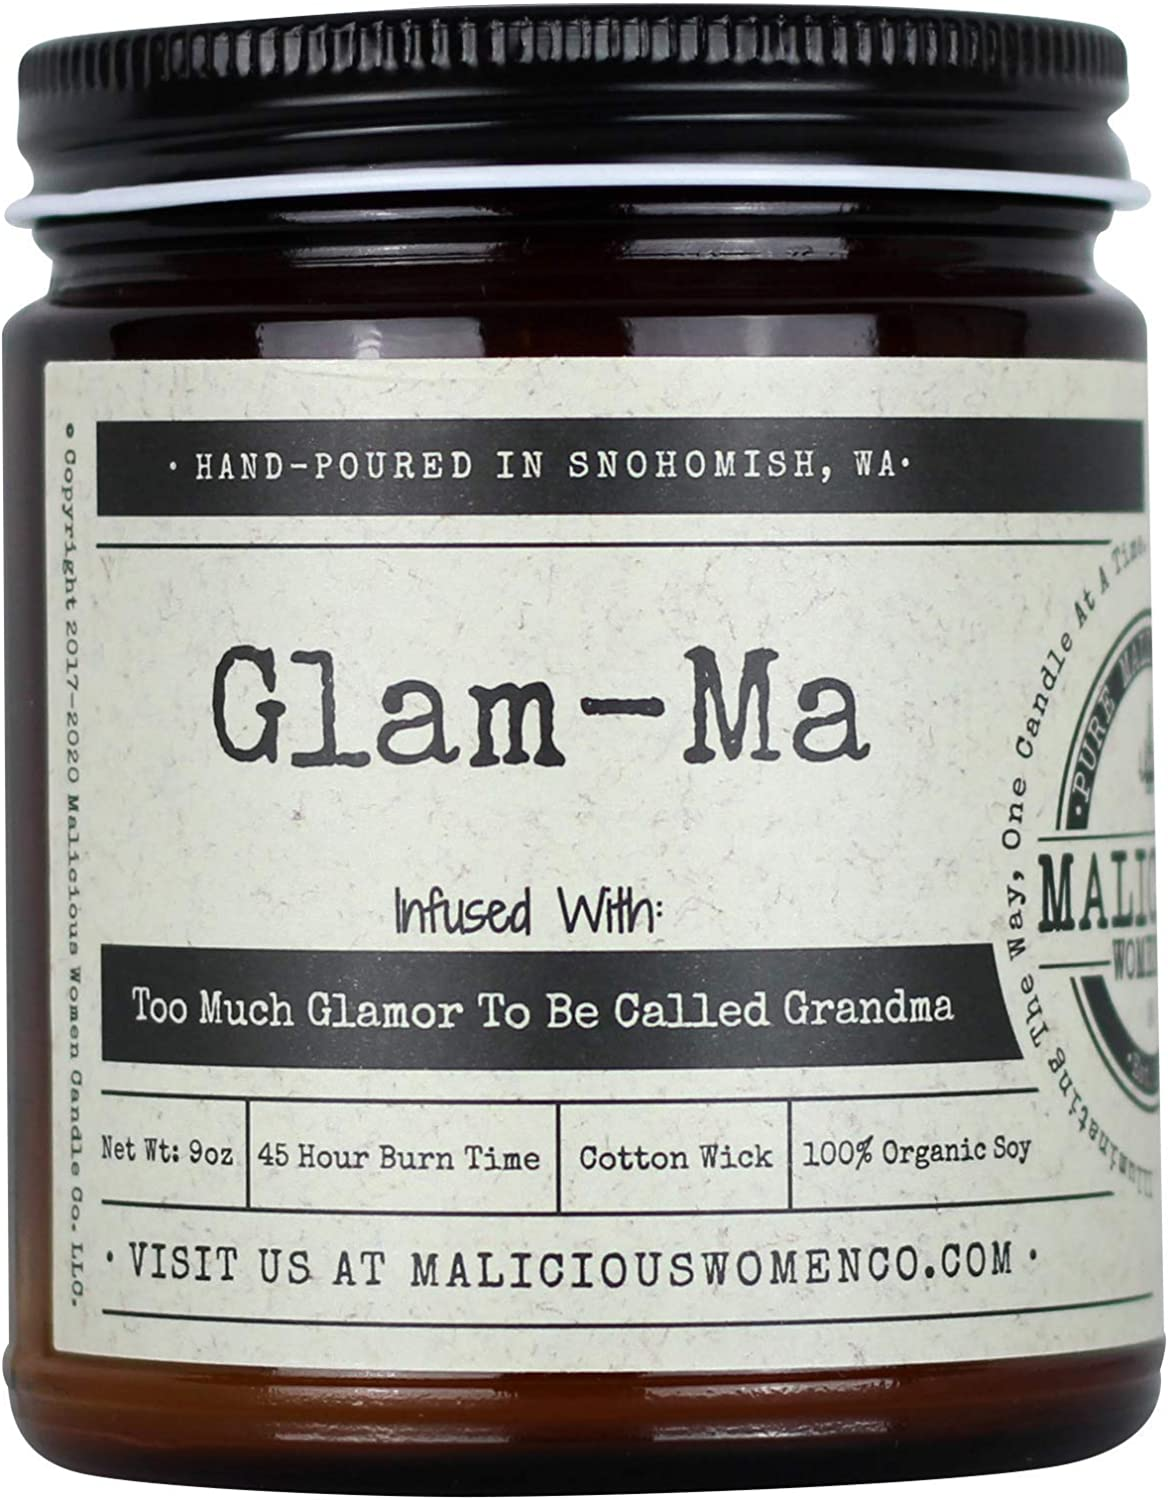 Malicious Women Candle Co - Glam-Ma, Rebel Rose Infused with Too Much Glamour to Be Called Grandma!, All-Natural Organic Soy Candle, 9 oz